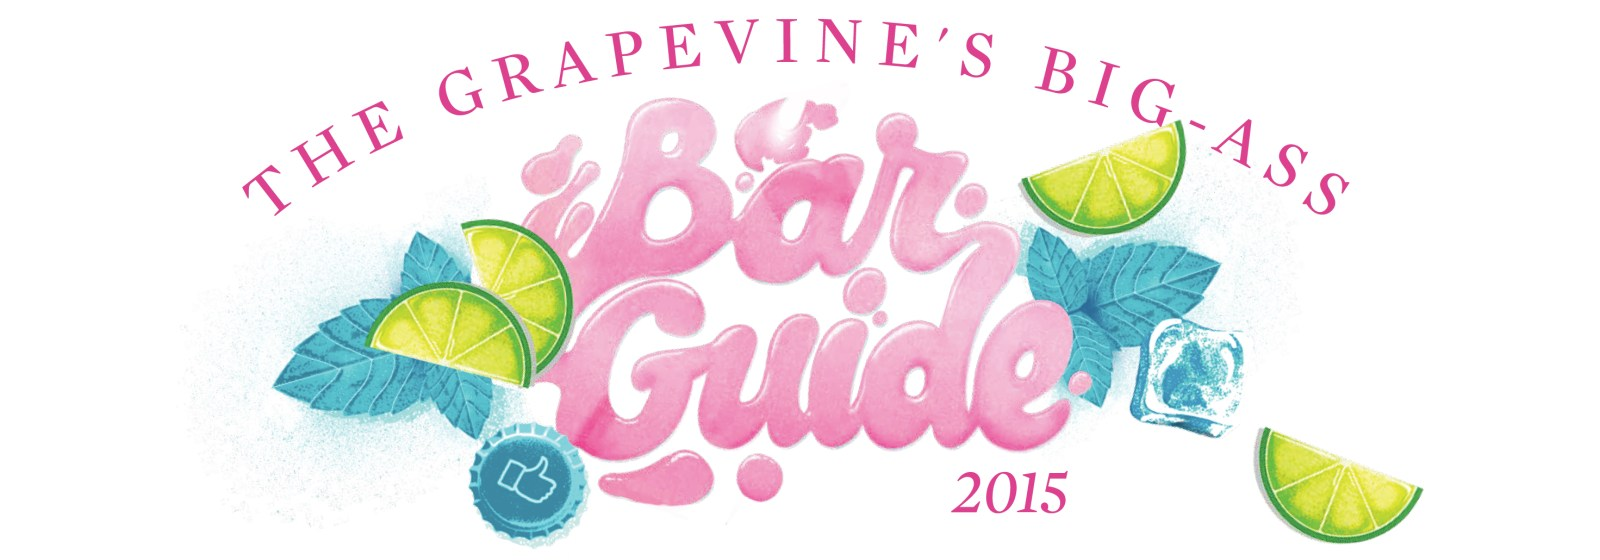 THE GRAPEVINE'S BIG-ASS BAR GUIDE 2015!